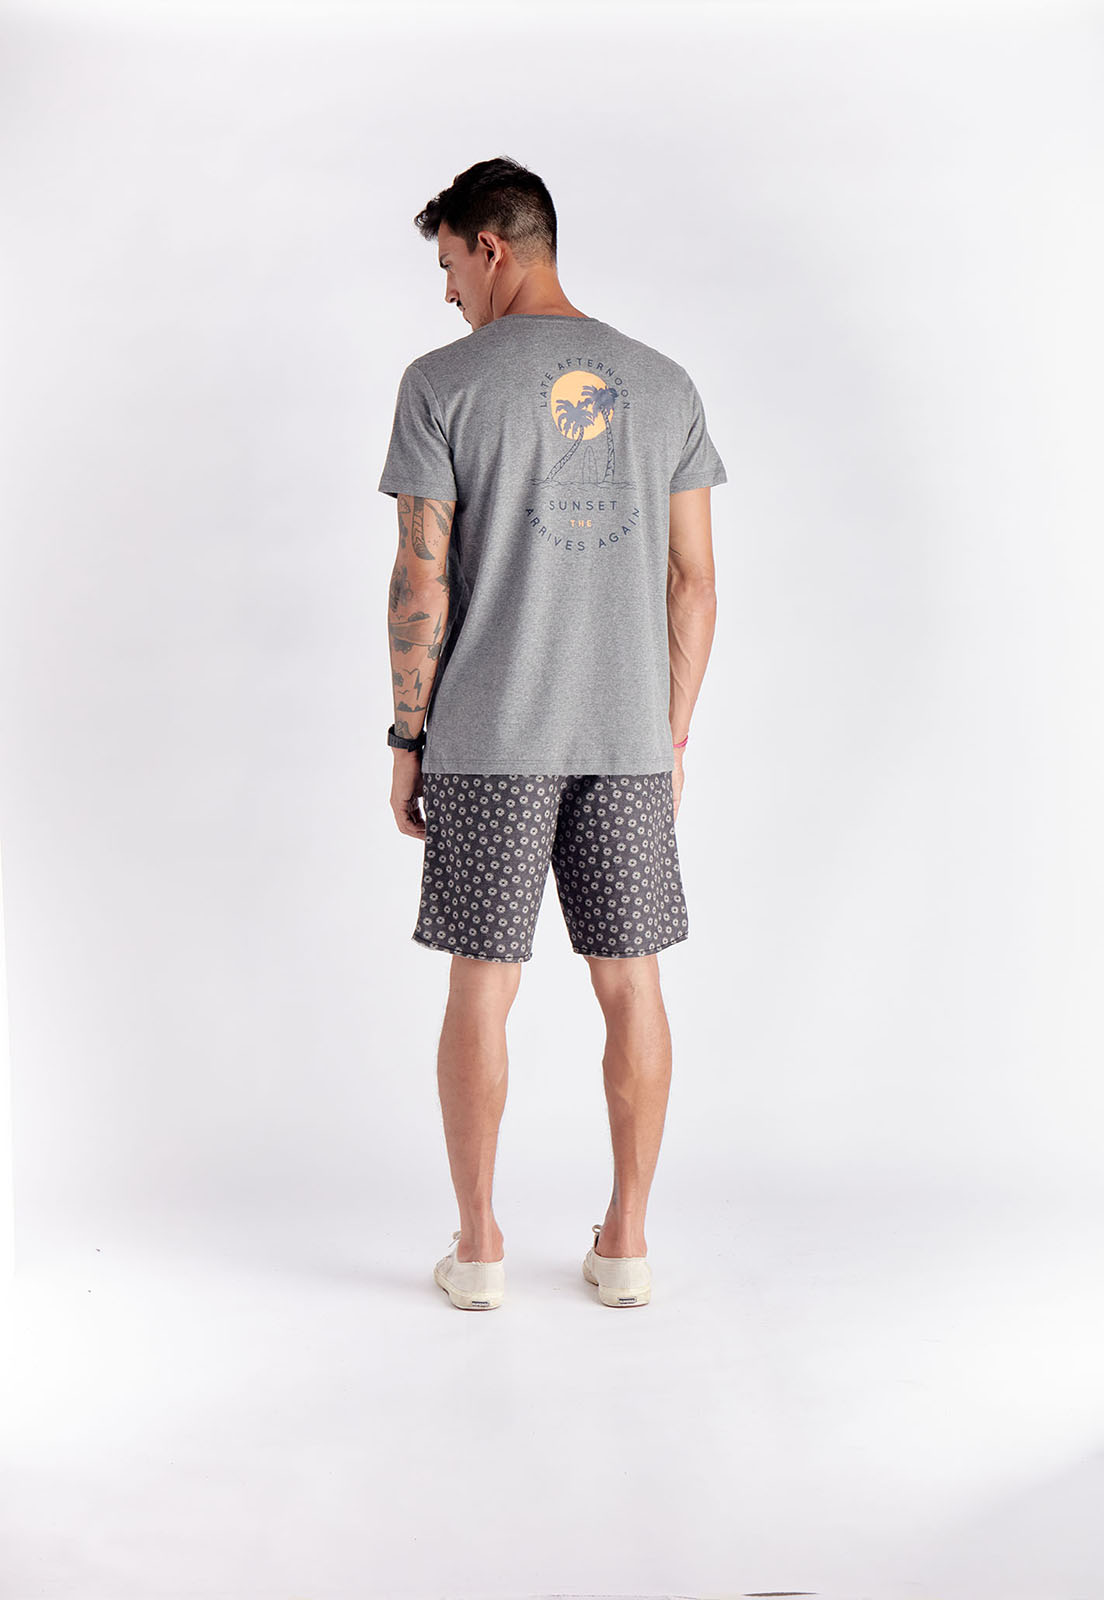 T-shirt Afternoon Mescla Melty  - melty surf & Co.